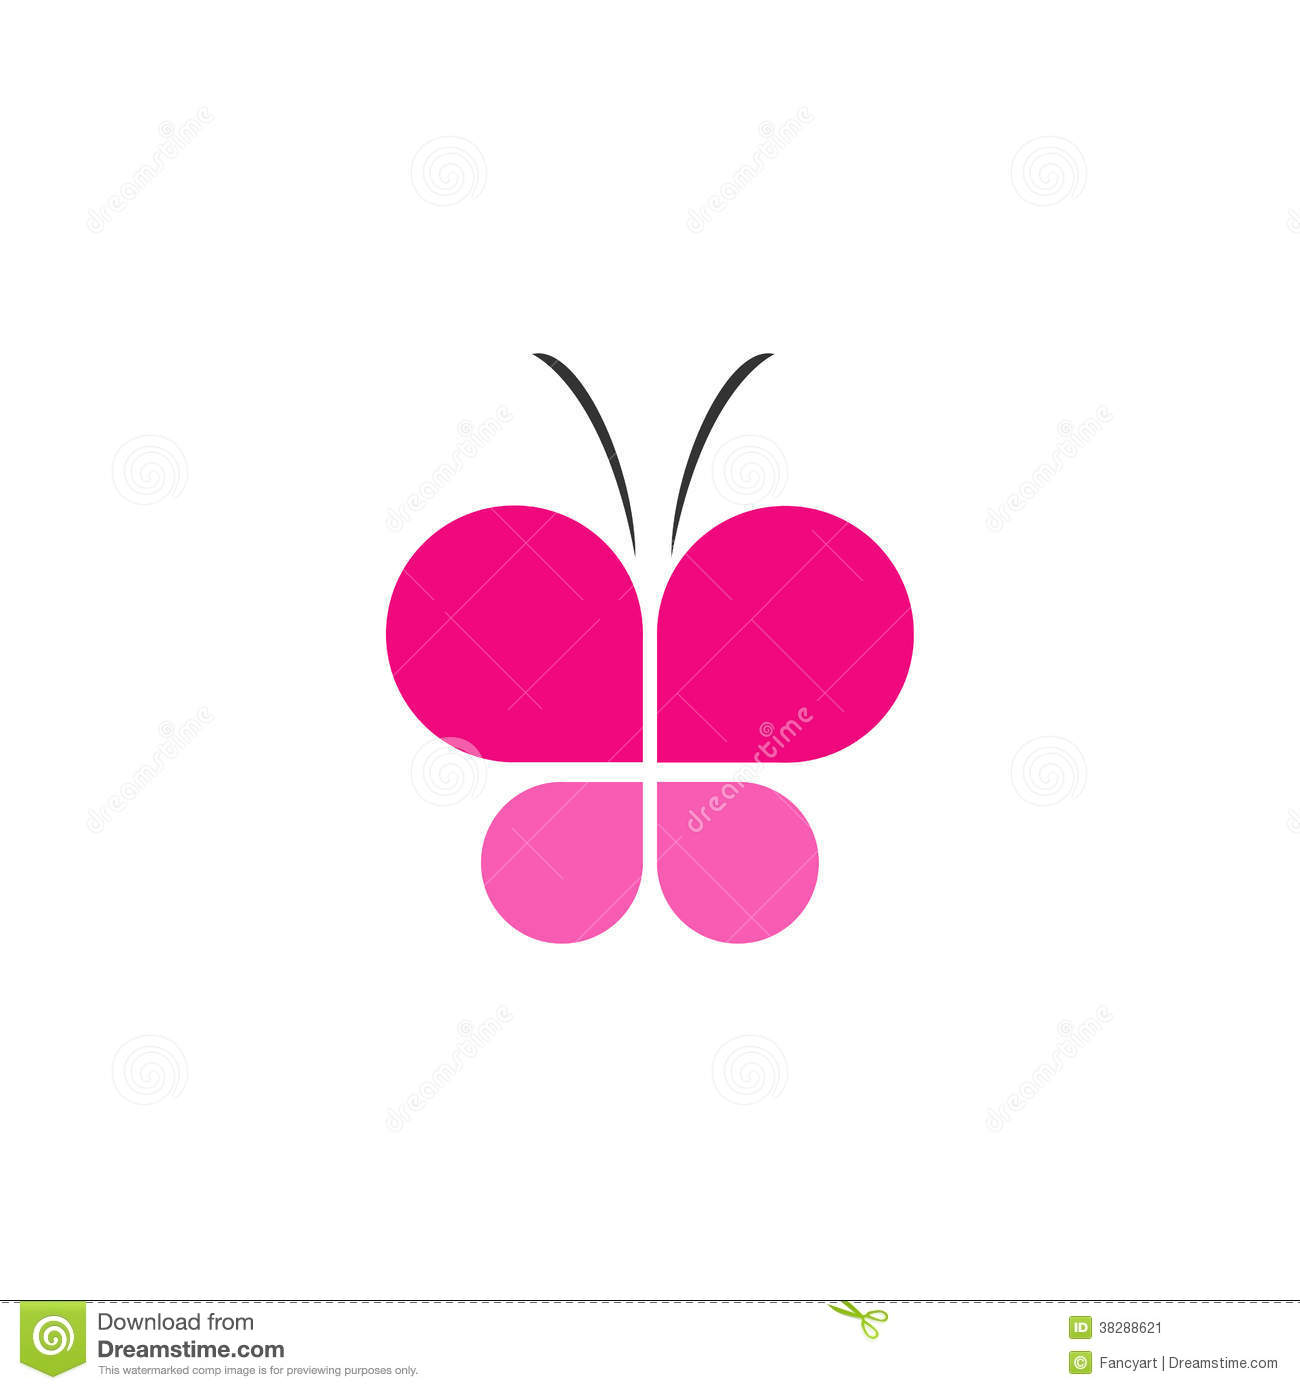 Pink Butterfly Business Icon Stock Image - Image: 38288621: dreamstime.com/stock-image-pink-butterfly-business-icon-image38288621